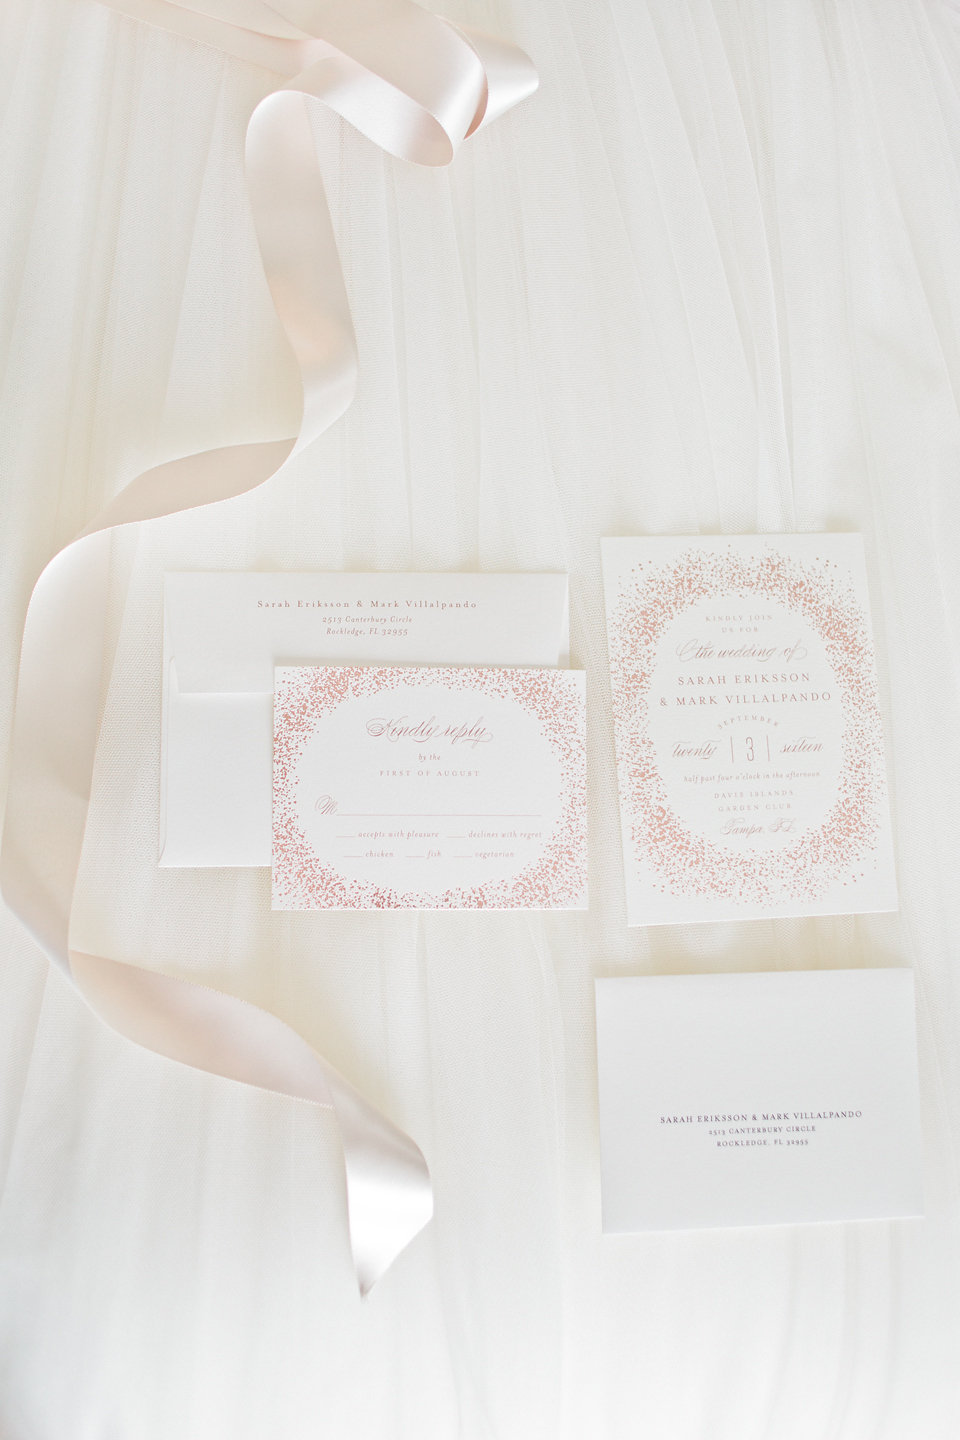 The invitation suite design featured a burst of rose gold foil.